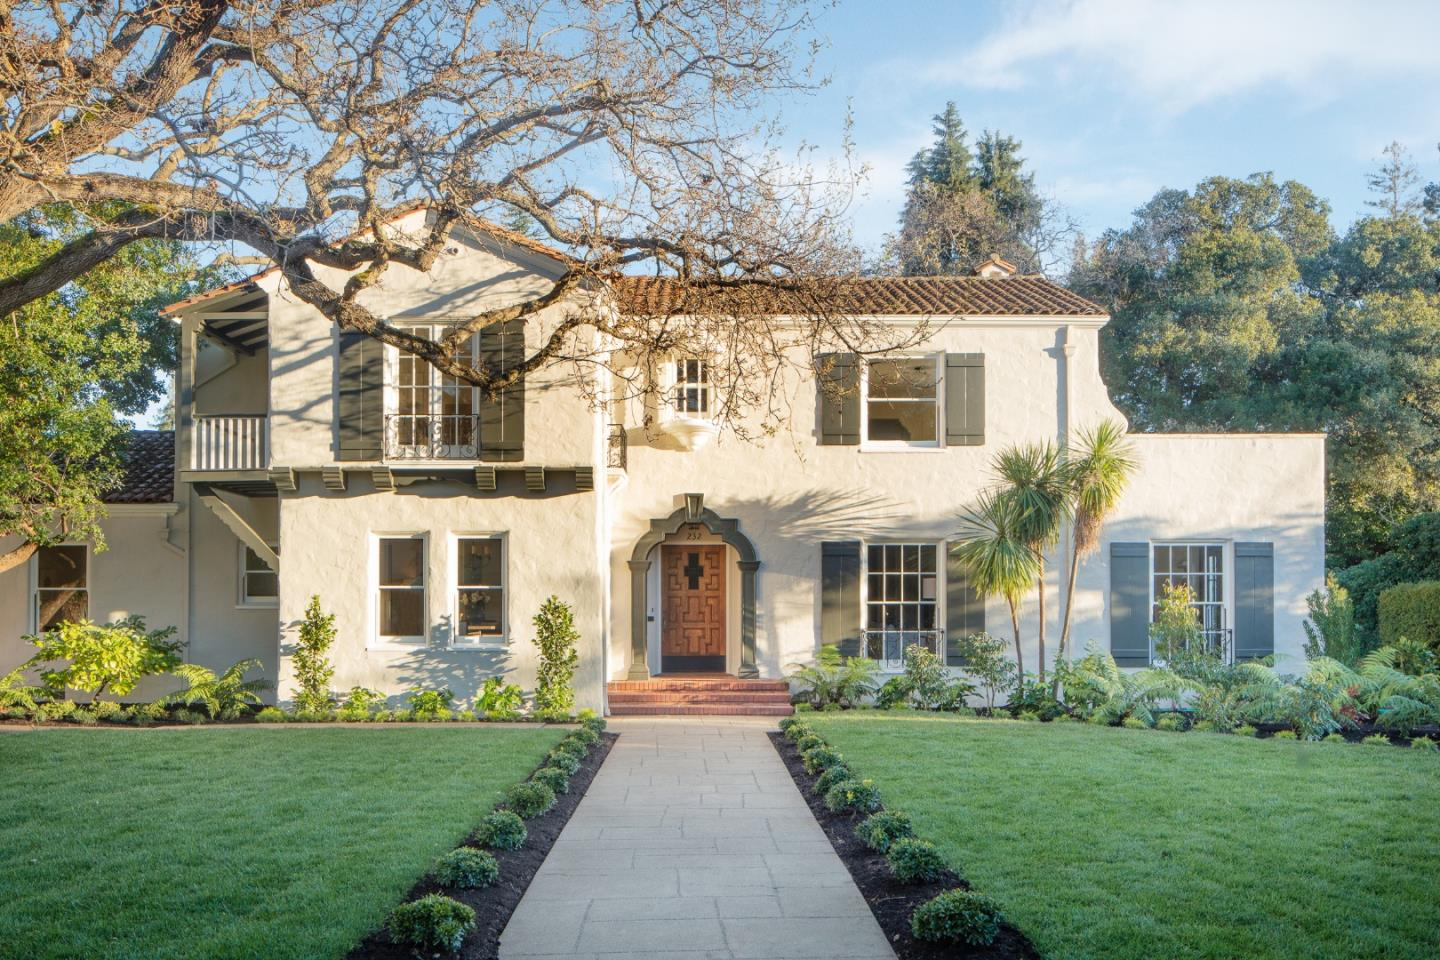 232 Coleridge AVE, Palo Alto, California